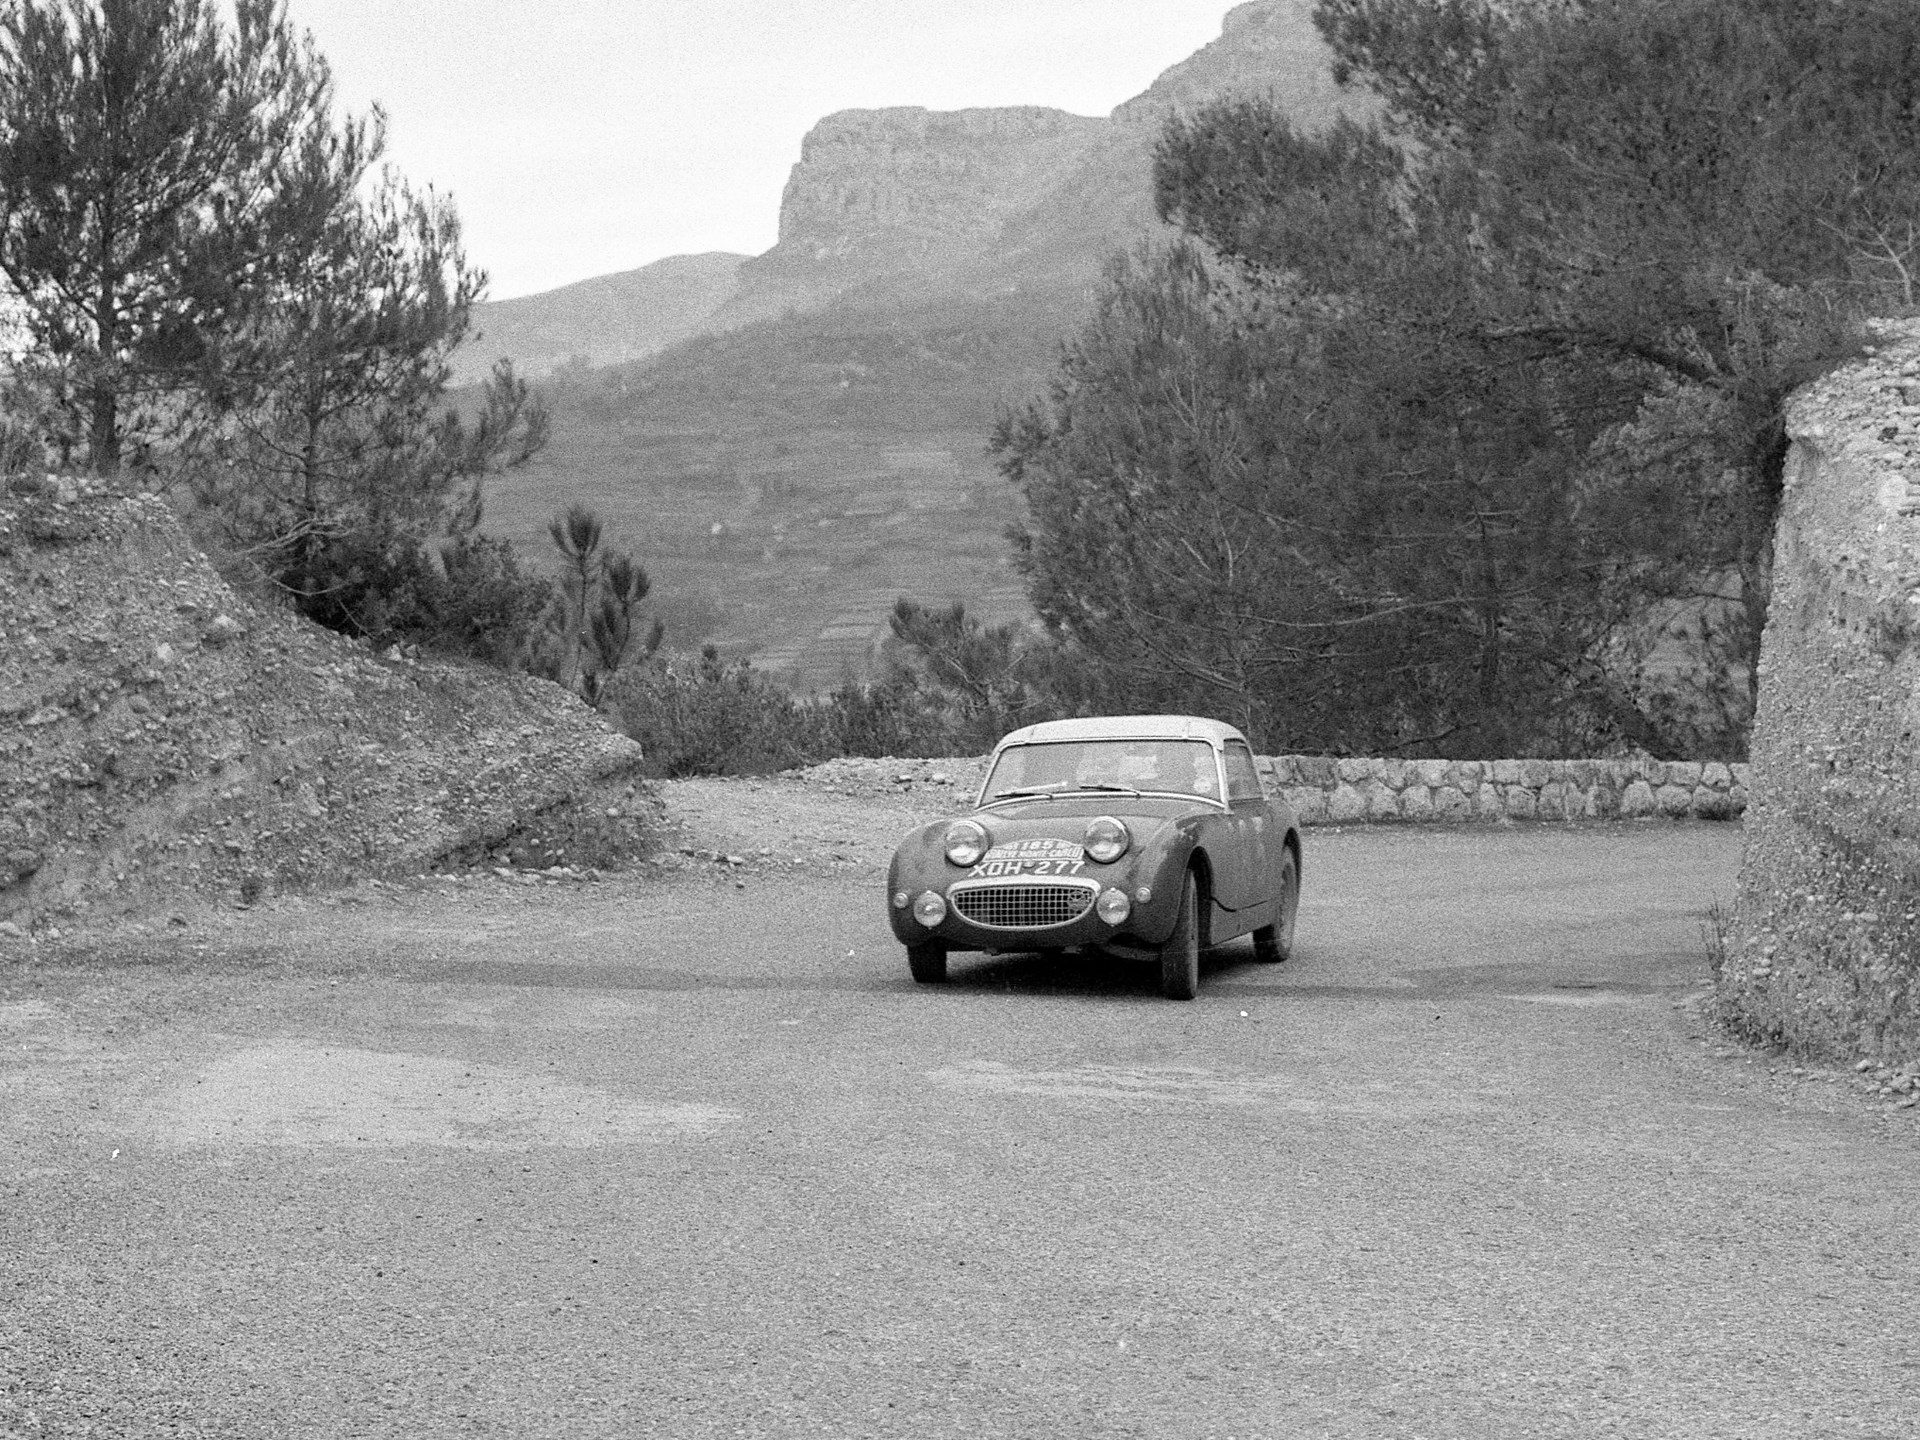 The Austin Healey at the Rallye Monte Carlo in 1959 where it finished fifth in class.